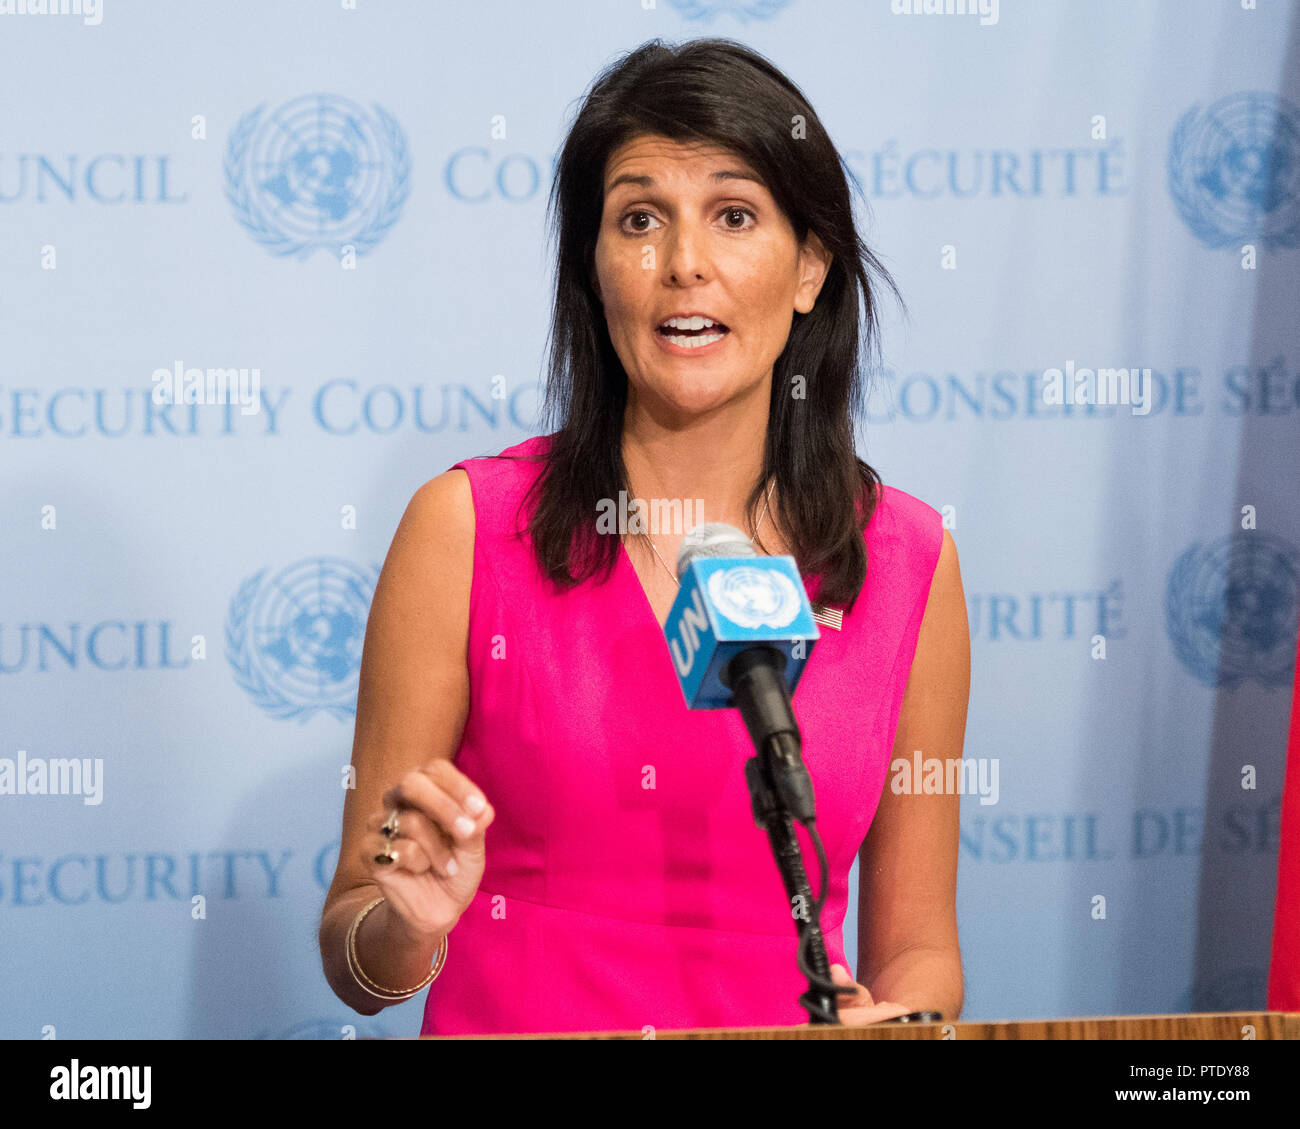 Nikki Haley pictured at a press conference at the United Nations. The UN Ambassador to the United Nation has announced her resignation on 9 October 2018. The US president Donald Trump has already accepted her resignation. - Stock Image